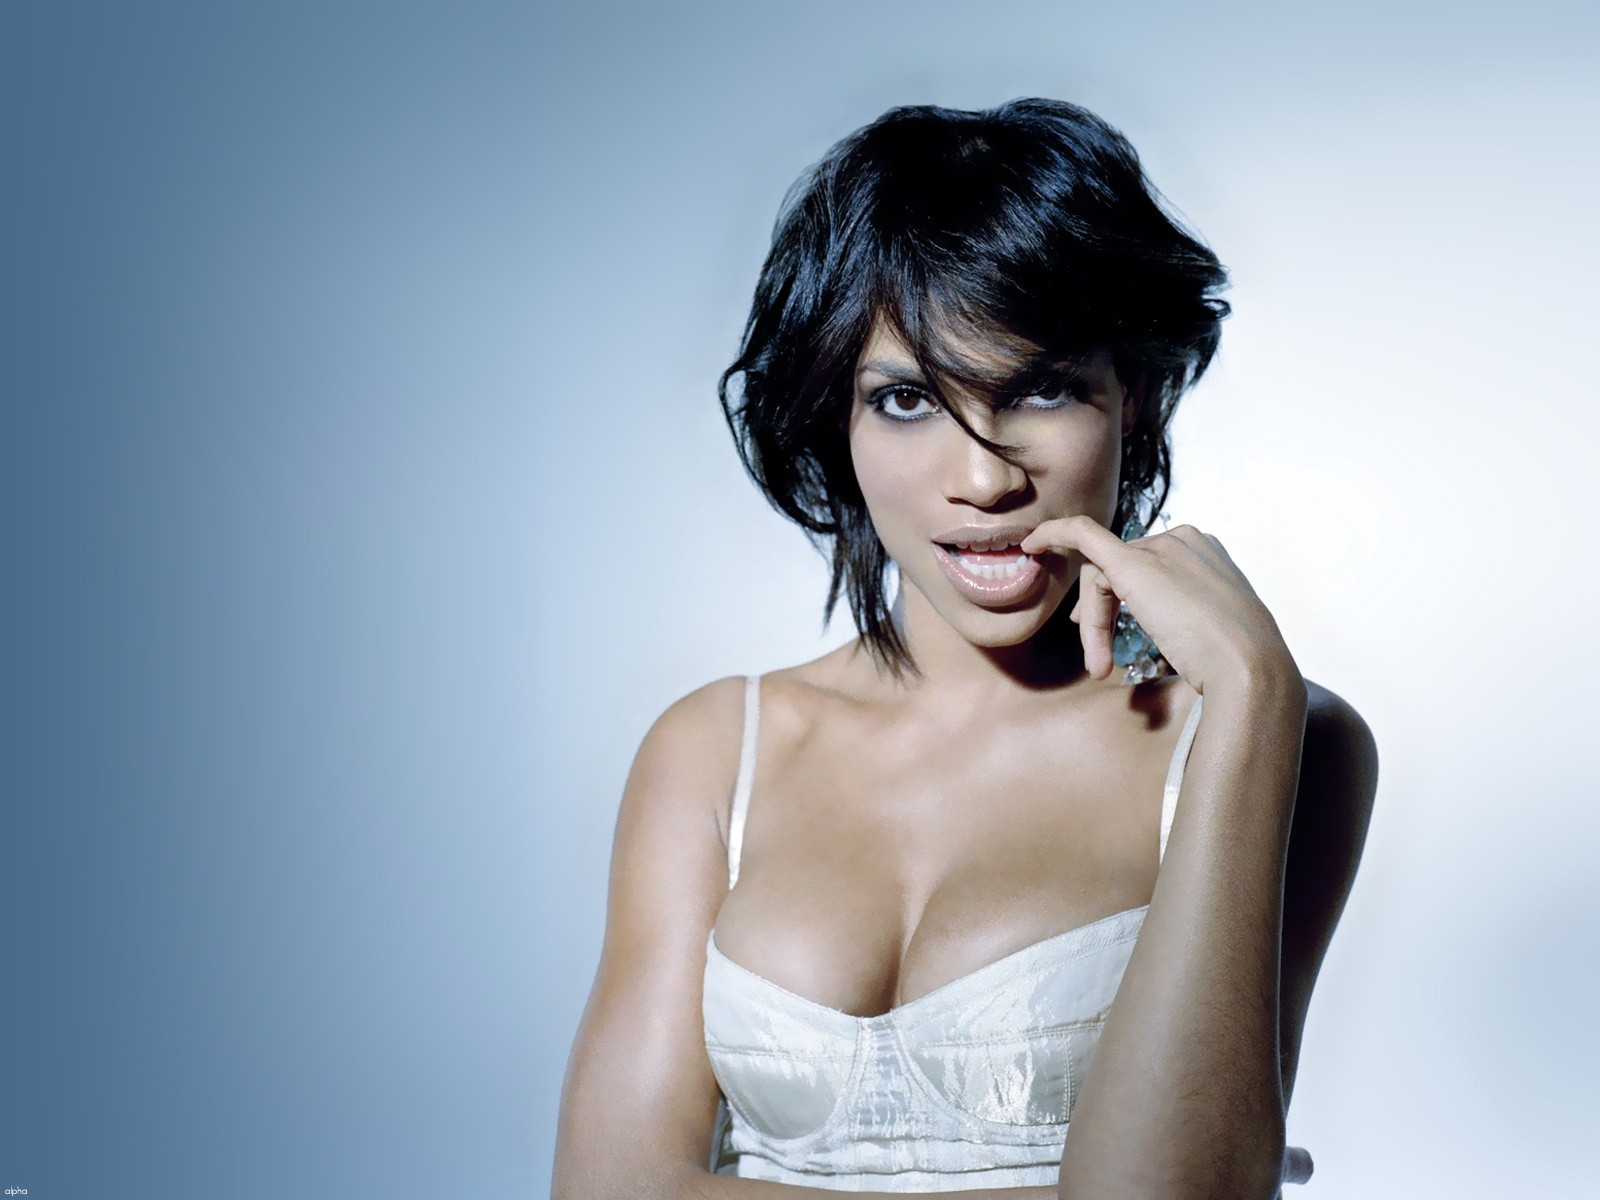 56 Rosario Dawson HD Wallpapers | Backgrounds - Wallpaper Abyss